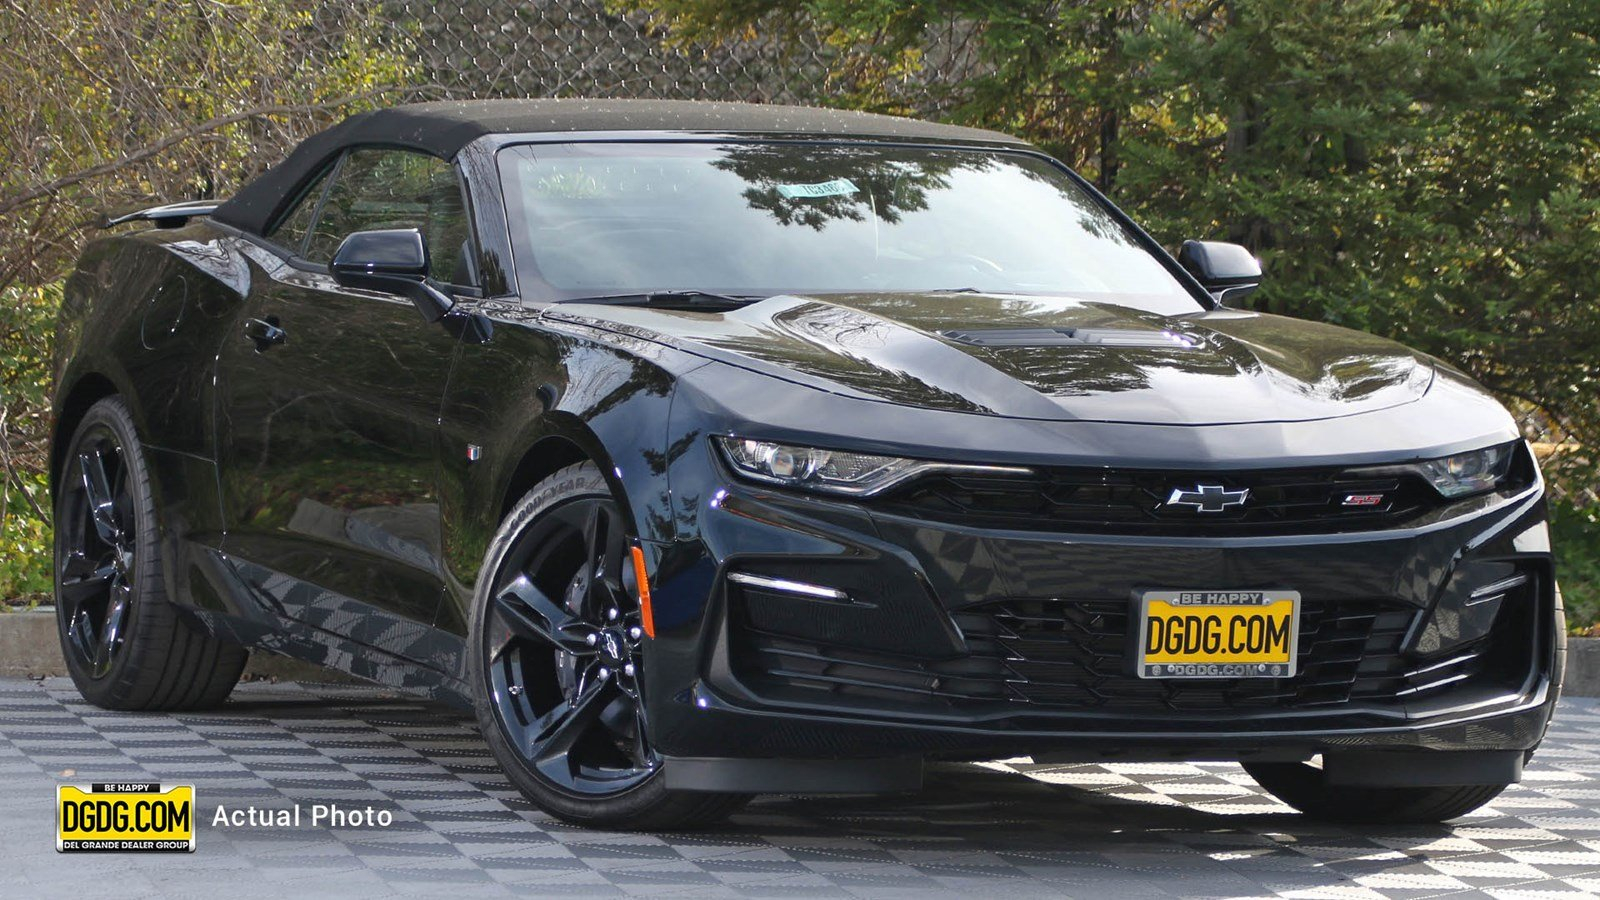 2020 Chevrolet Camaro 2Ss Rwd Convertible 2022 Chevy Camaro Ss Release Date, Exhaust, Features